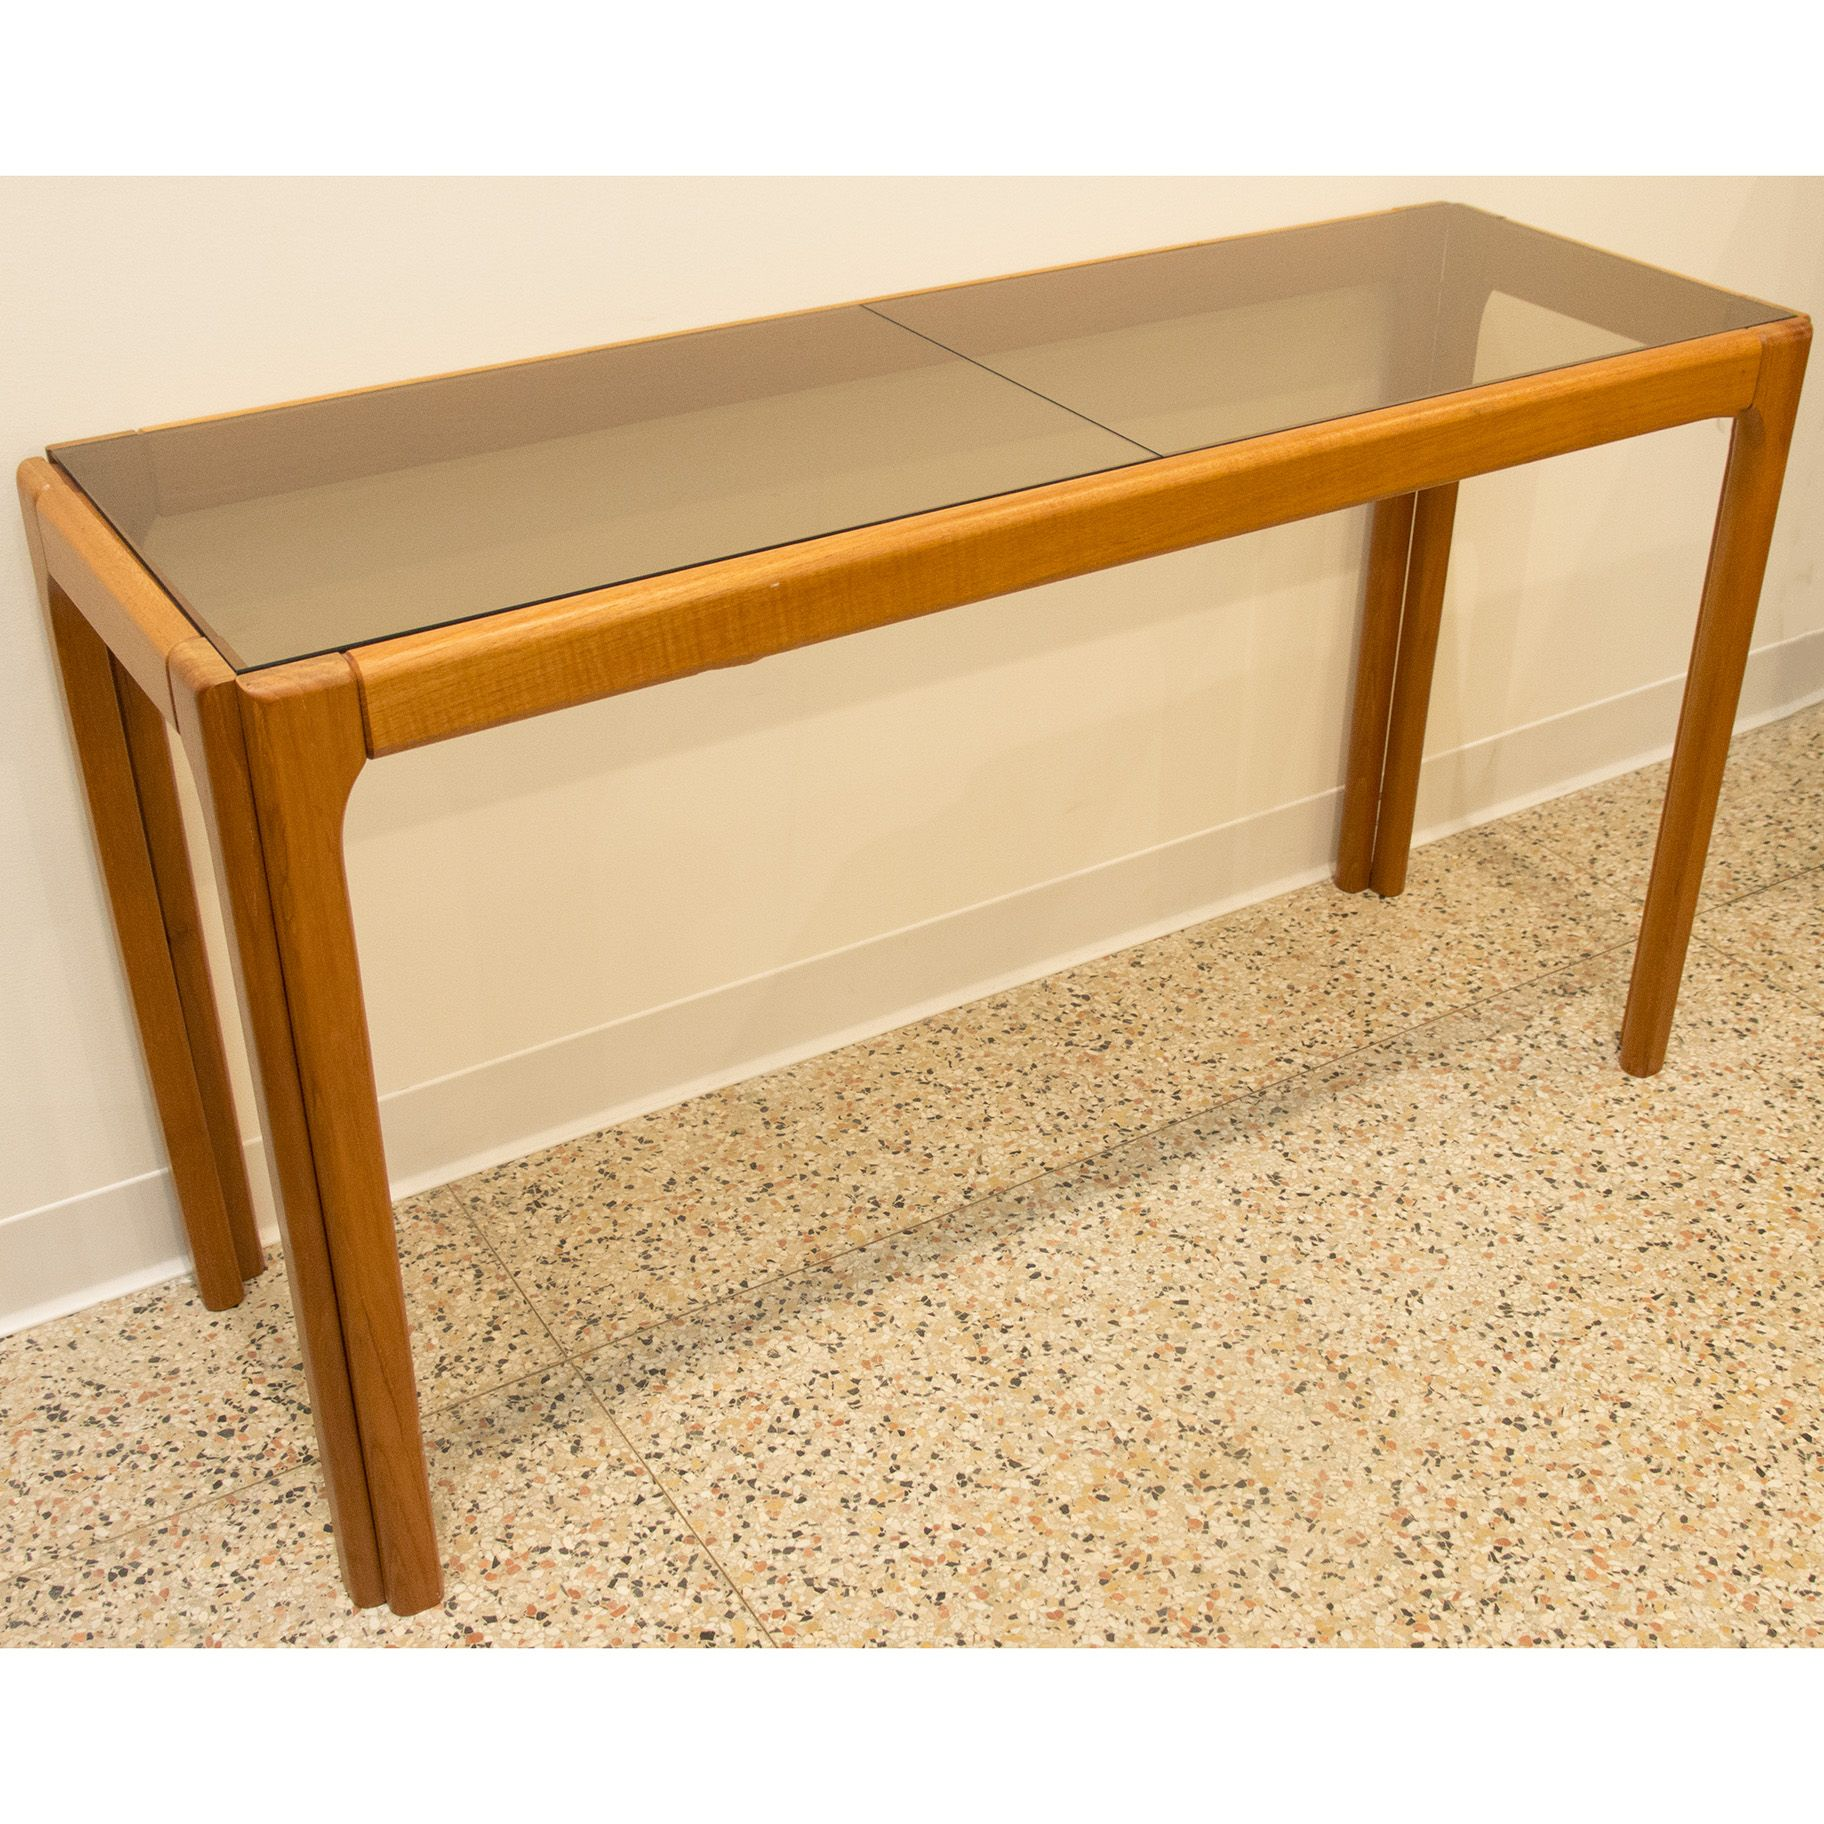 Attrayant Danish Modern Teak Console Table With Smoked Glass Top